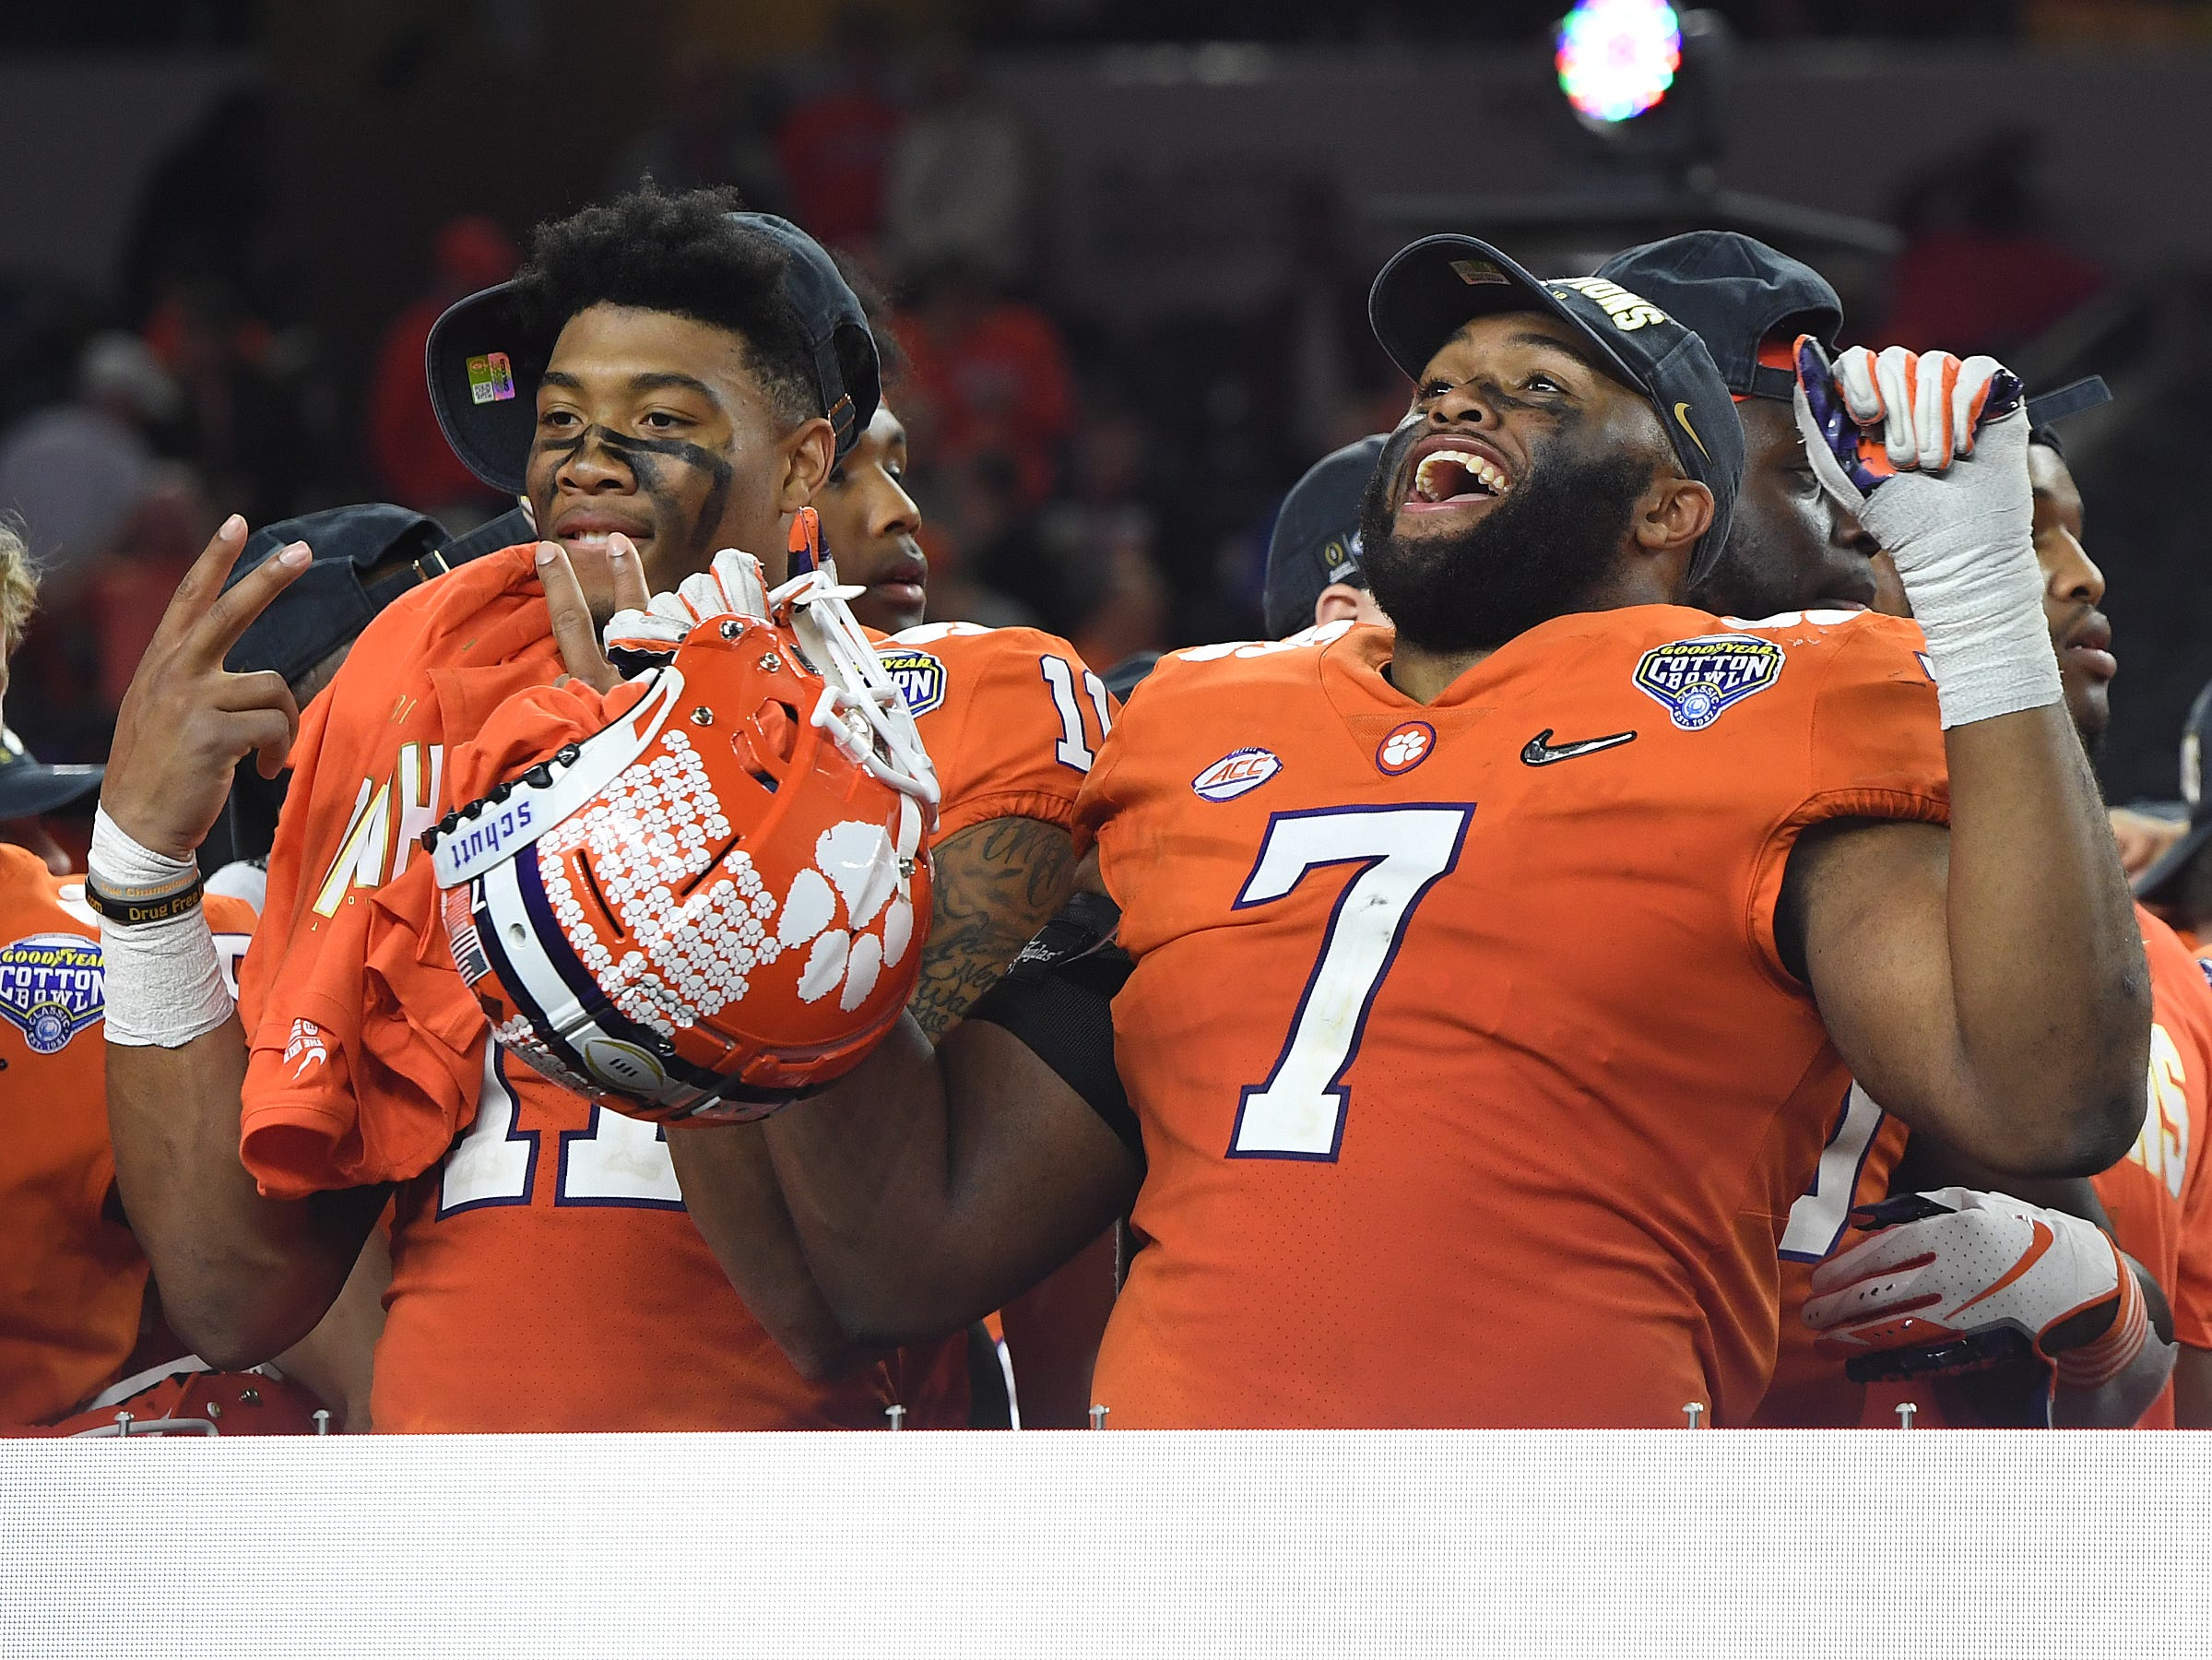 Clemson safety Isaiah Simmons (11), left, and defensive lineman Austin Bryant (7) celebrate the Tigers 30-3 win over Notre Dame in the Goodyear Cotton Bowl at AT&T stadium in Arlington, TX Saturday, December 29, 2018.